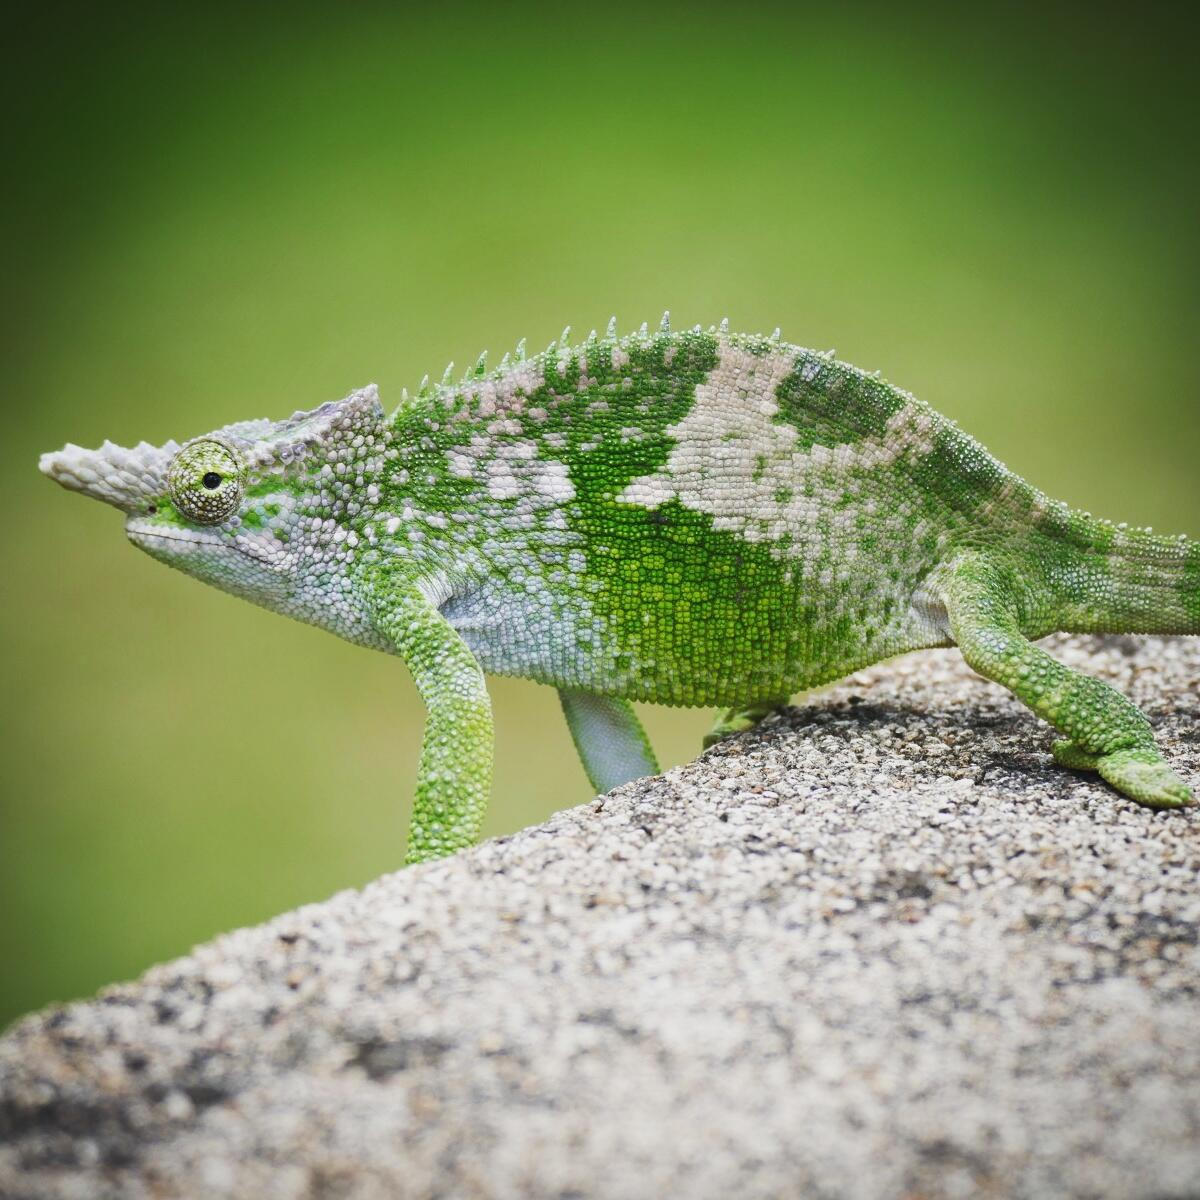 An endemic two-horned chameleon pauses at the Mullers Mountain Lodge. Noah Strycker